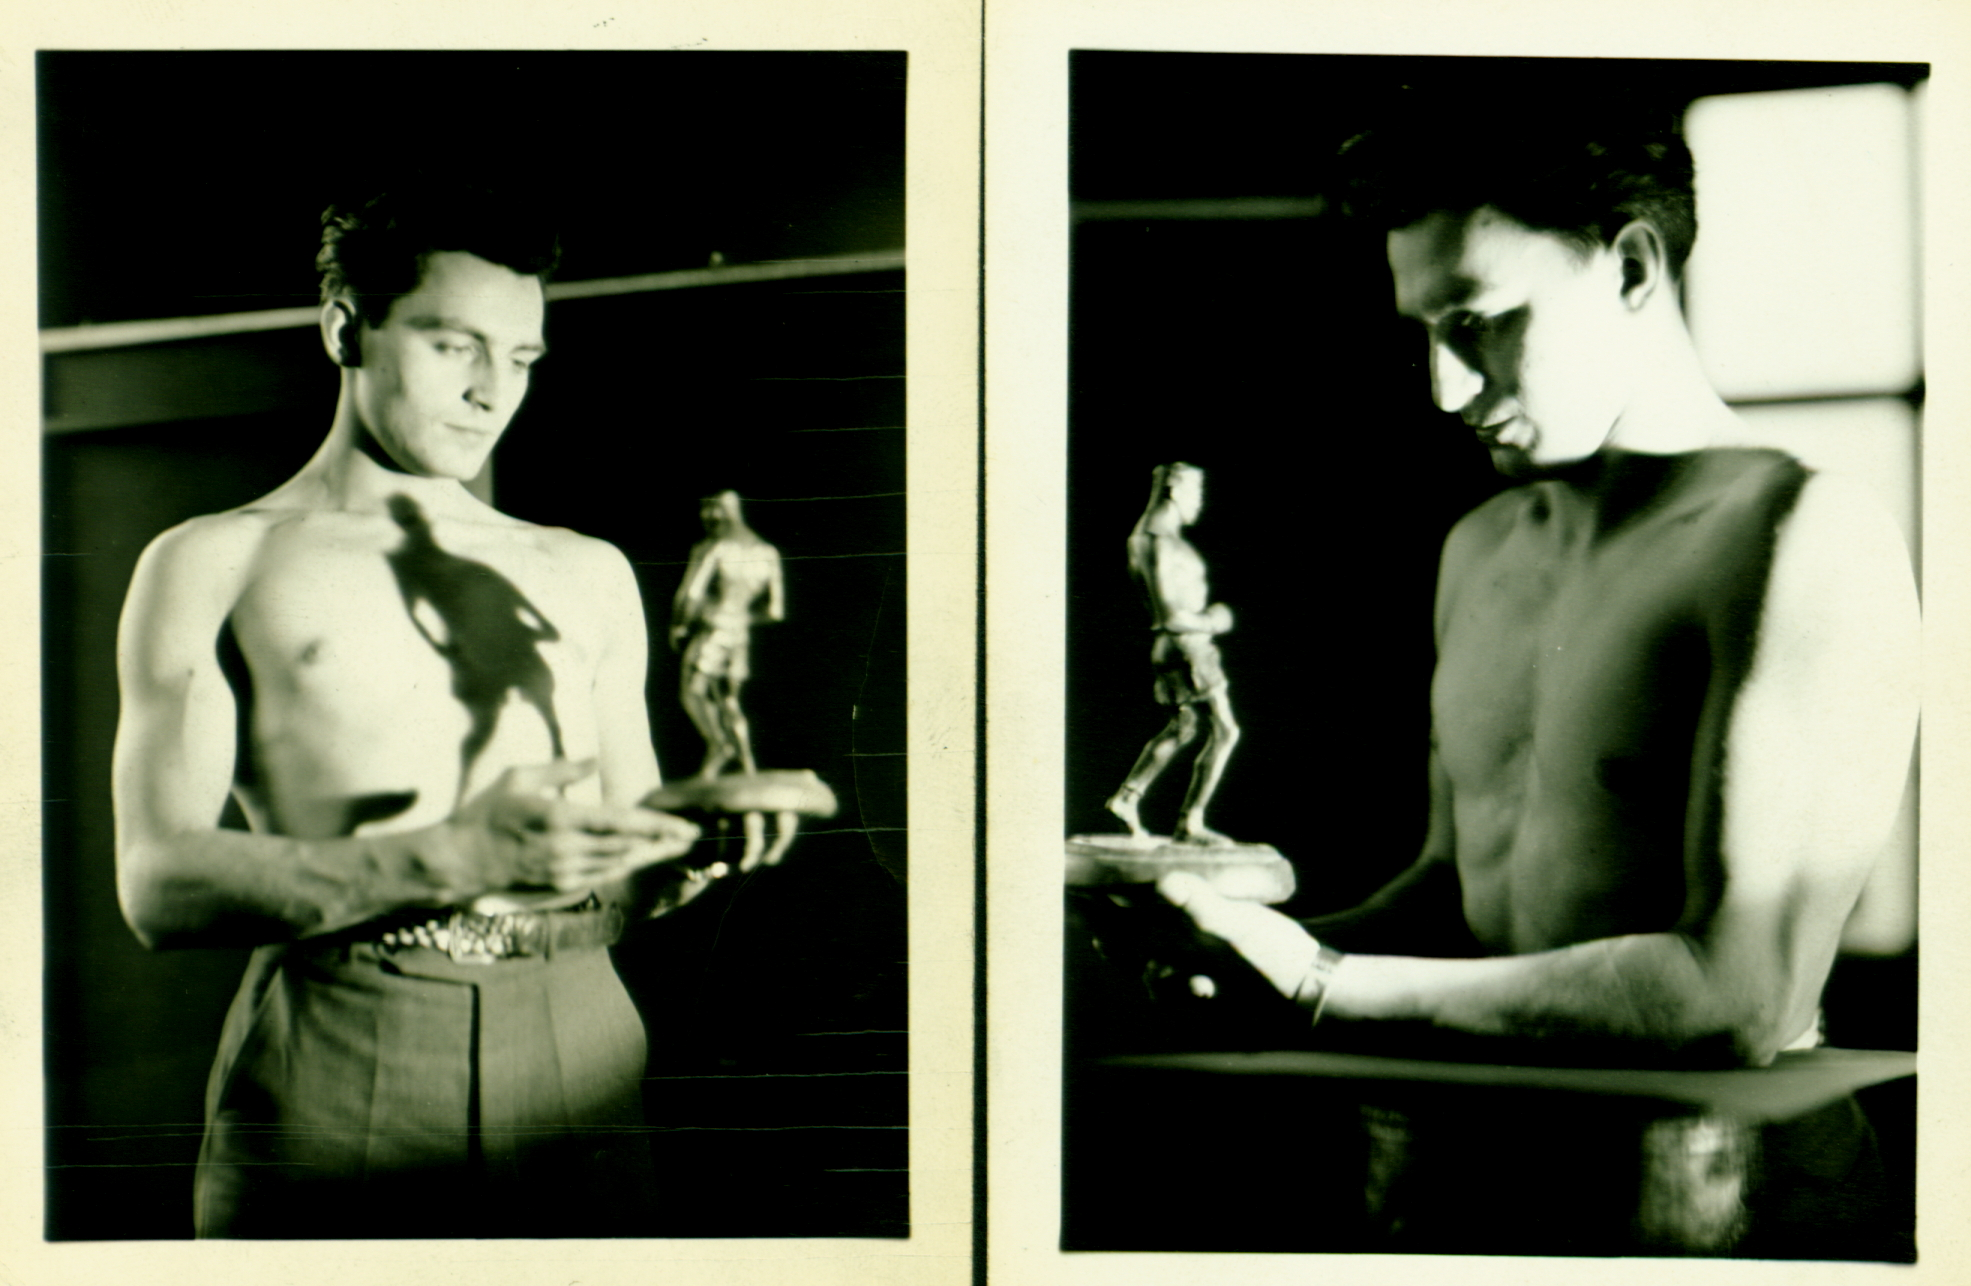 Sculpture of Boxer c. 1930